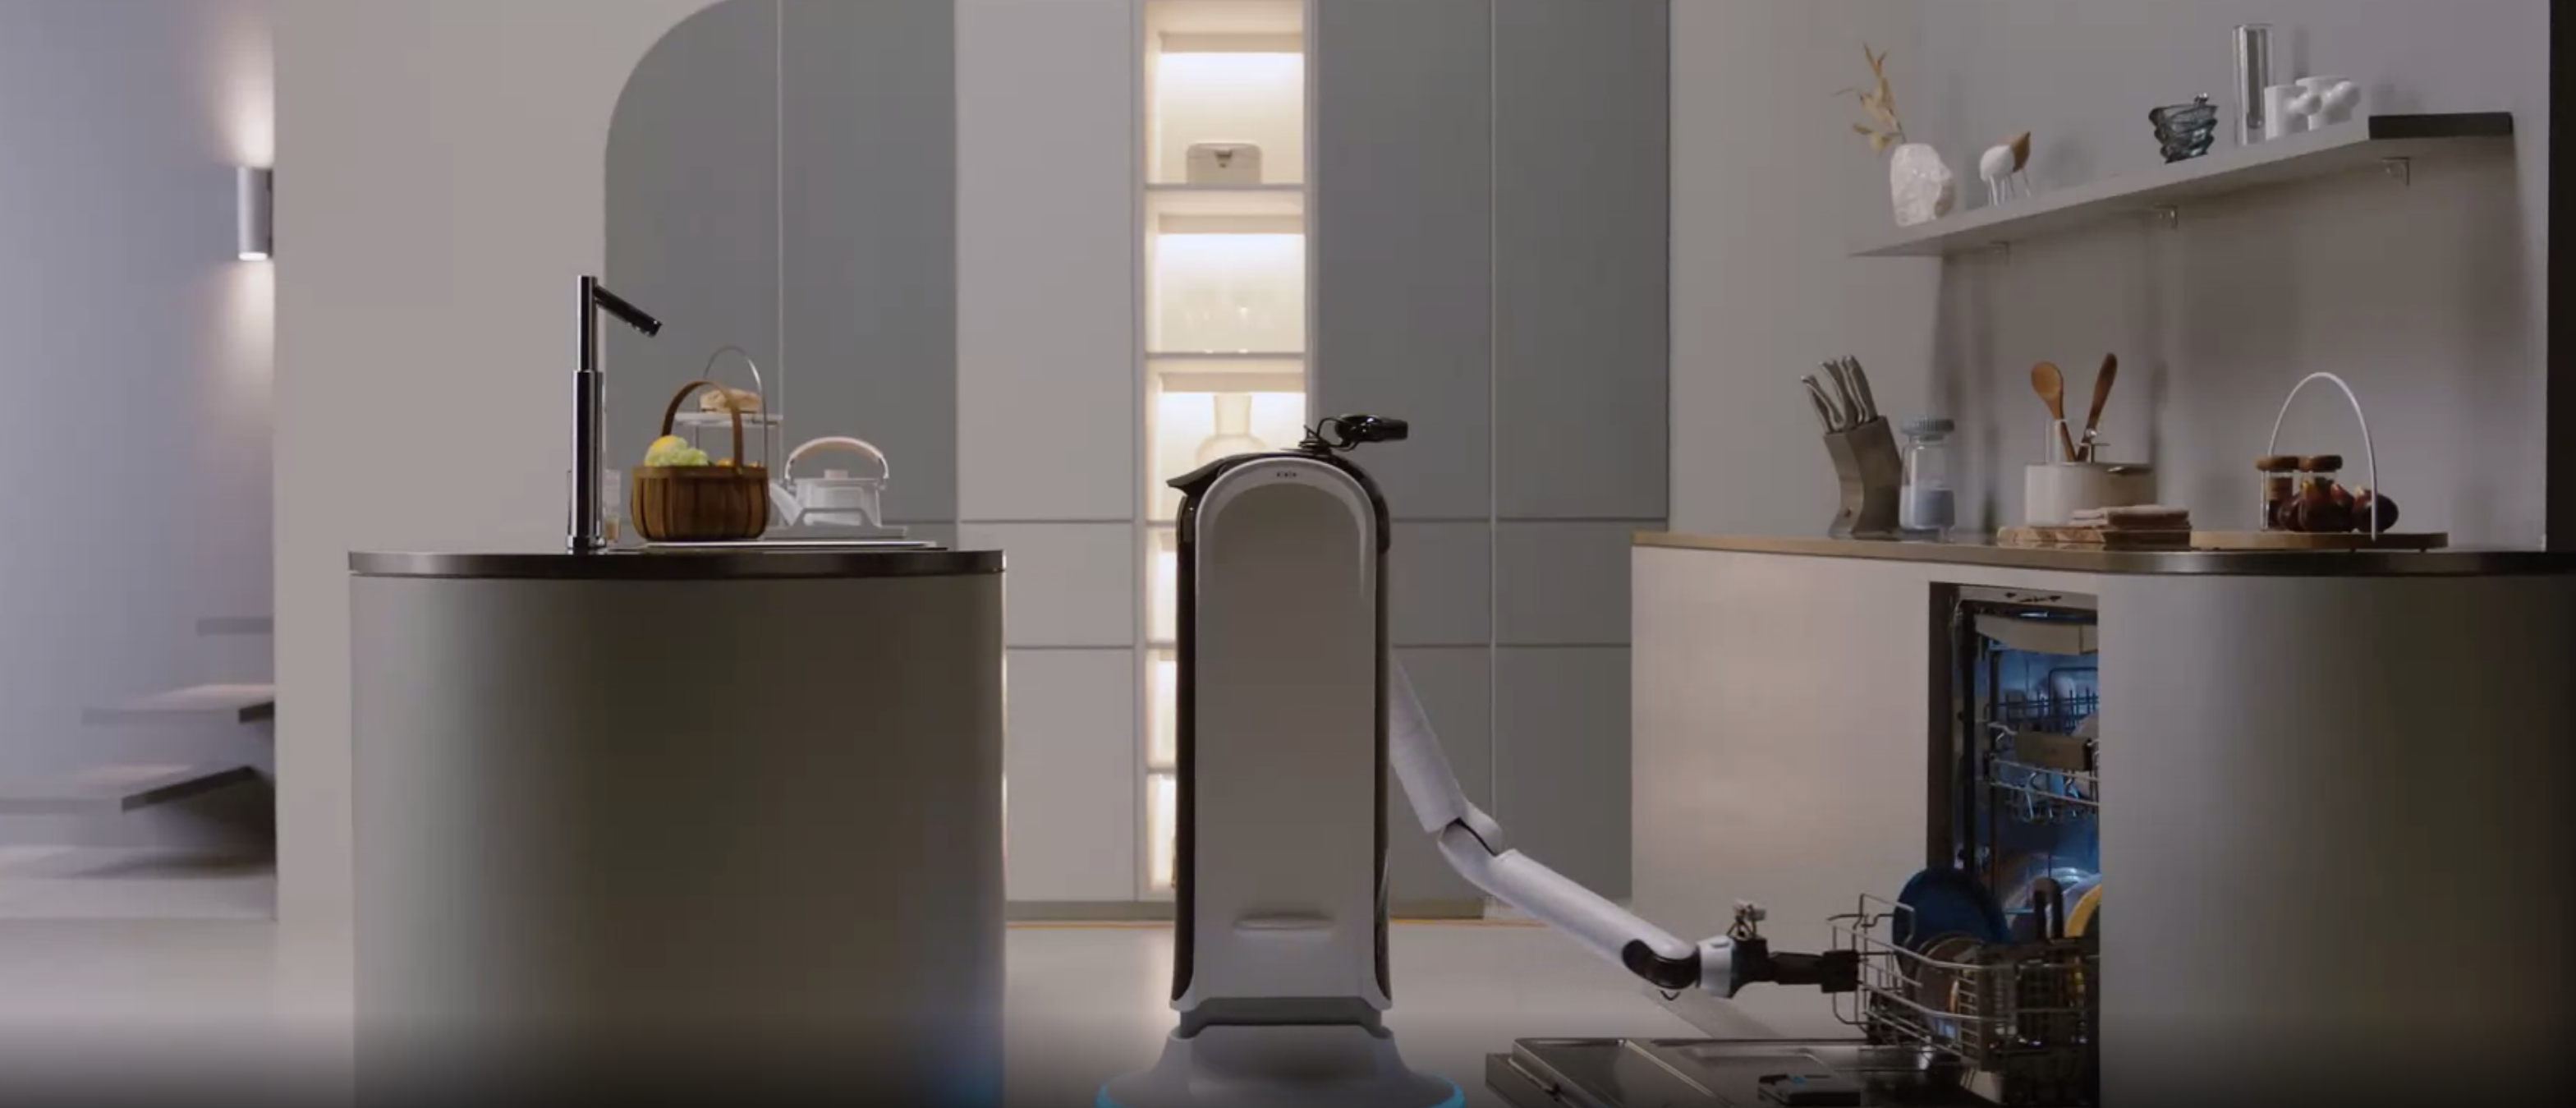 After you bust, Handy Bot will do the dishes.